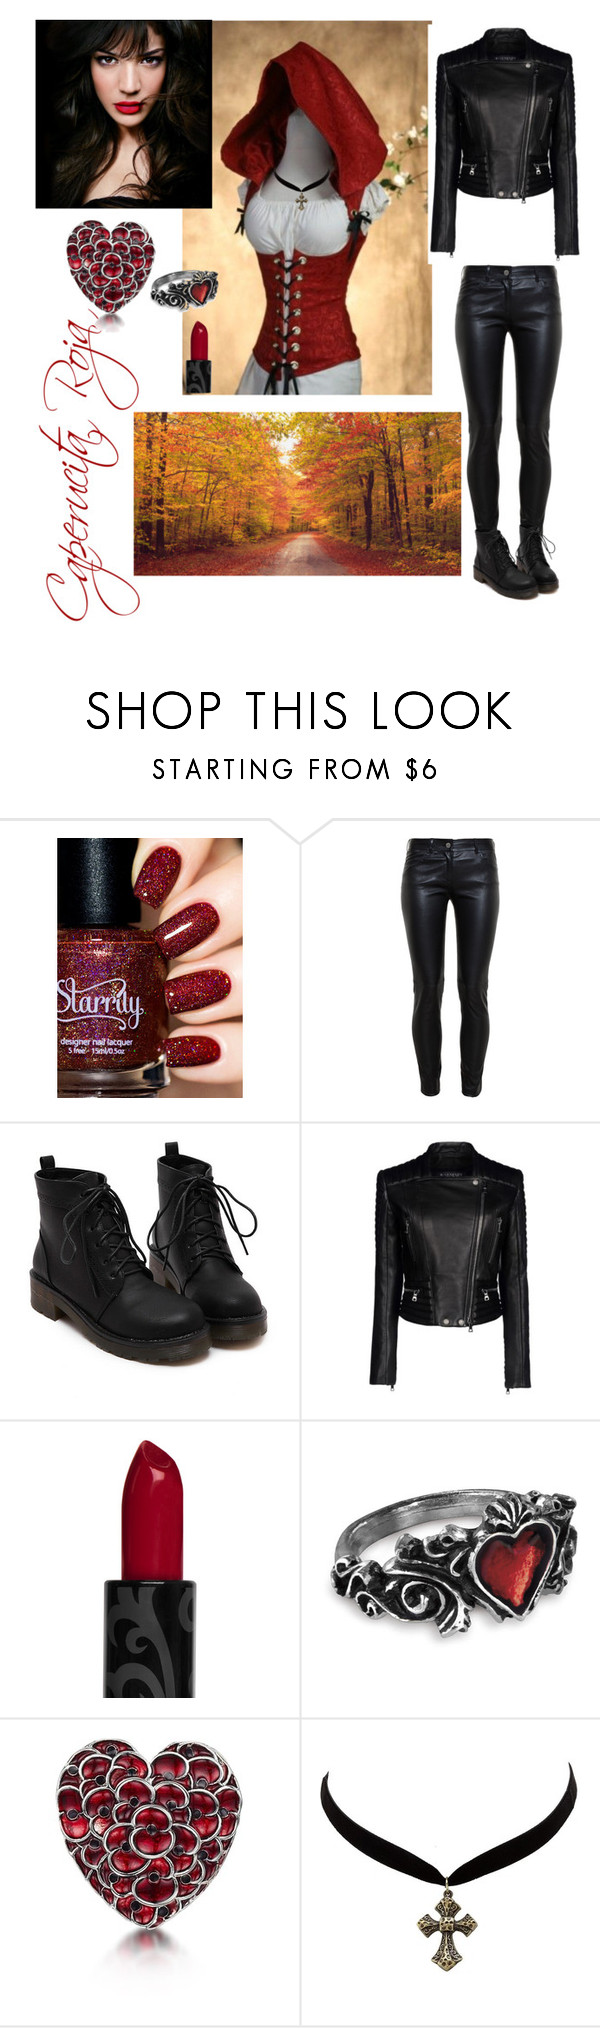 Caperucita roja urbana by crisvalx-cv on Polyvore featuring moda, Balenciaga, Charlotte Russe, Piel Leather and IVI